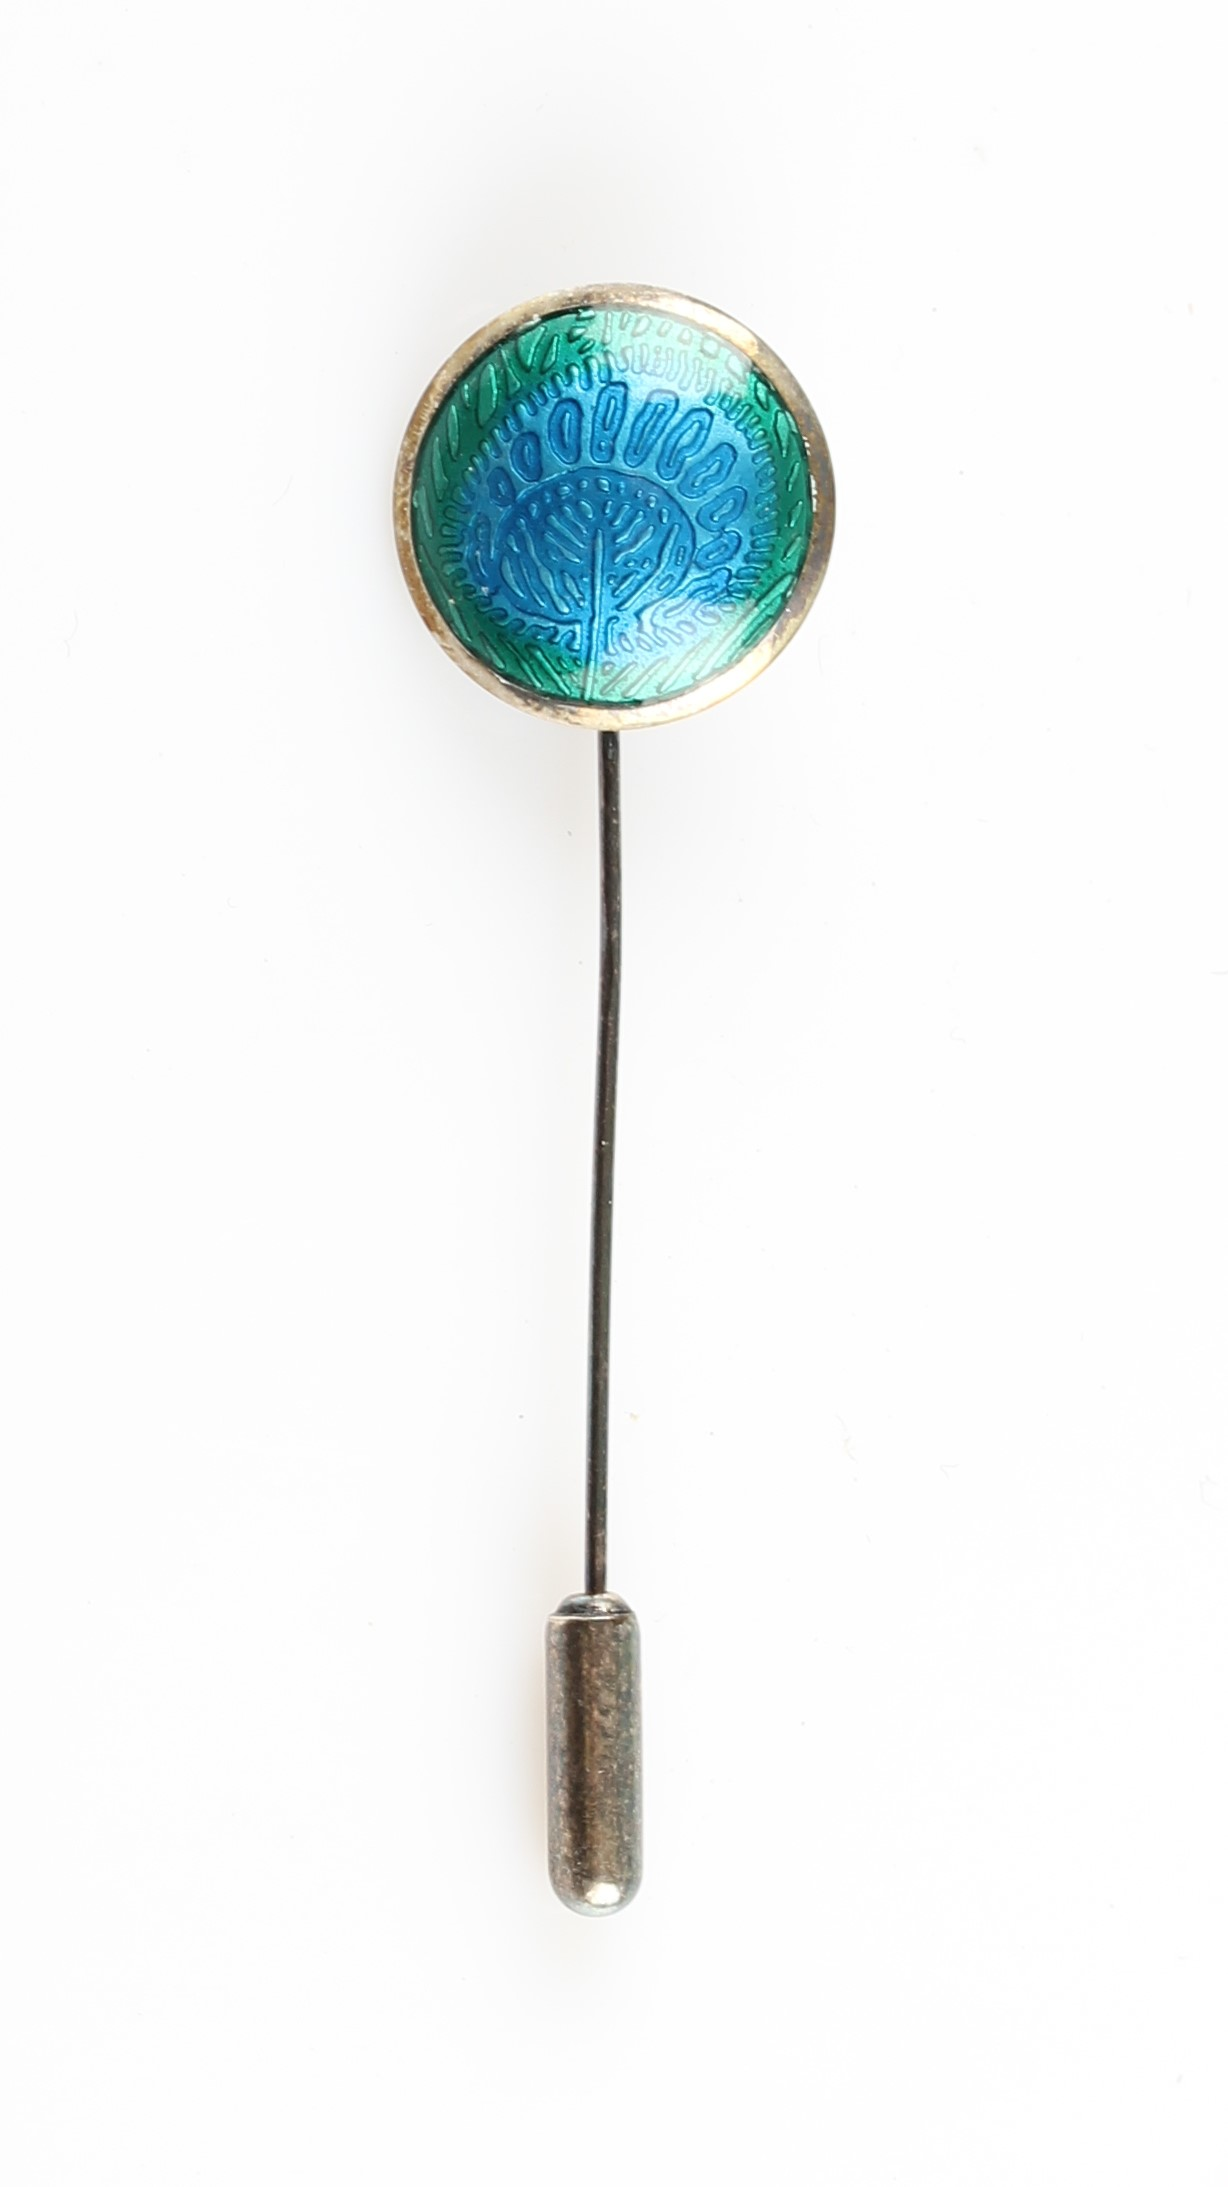 Lot 4 - A Liberty & Co. silver and enamel stick pin, the circular metalwork featuring green to blue